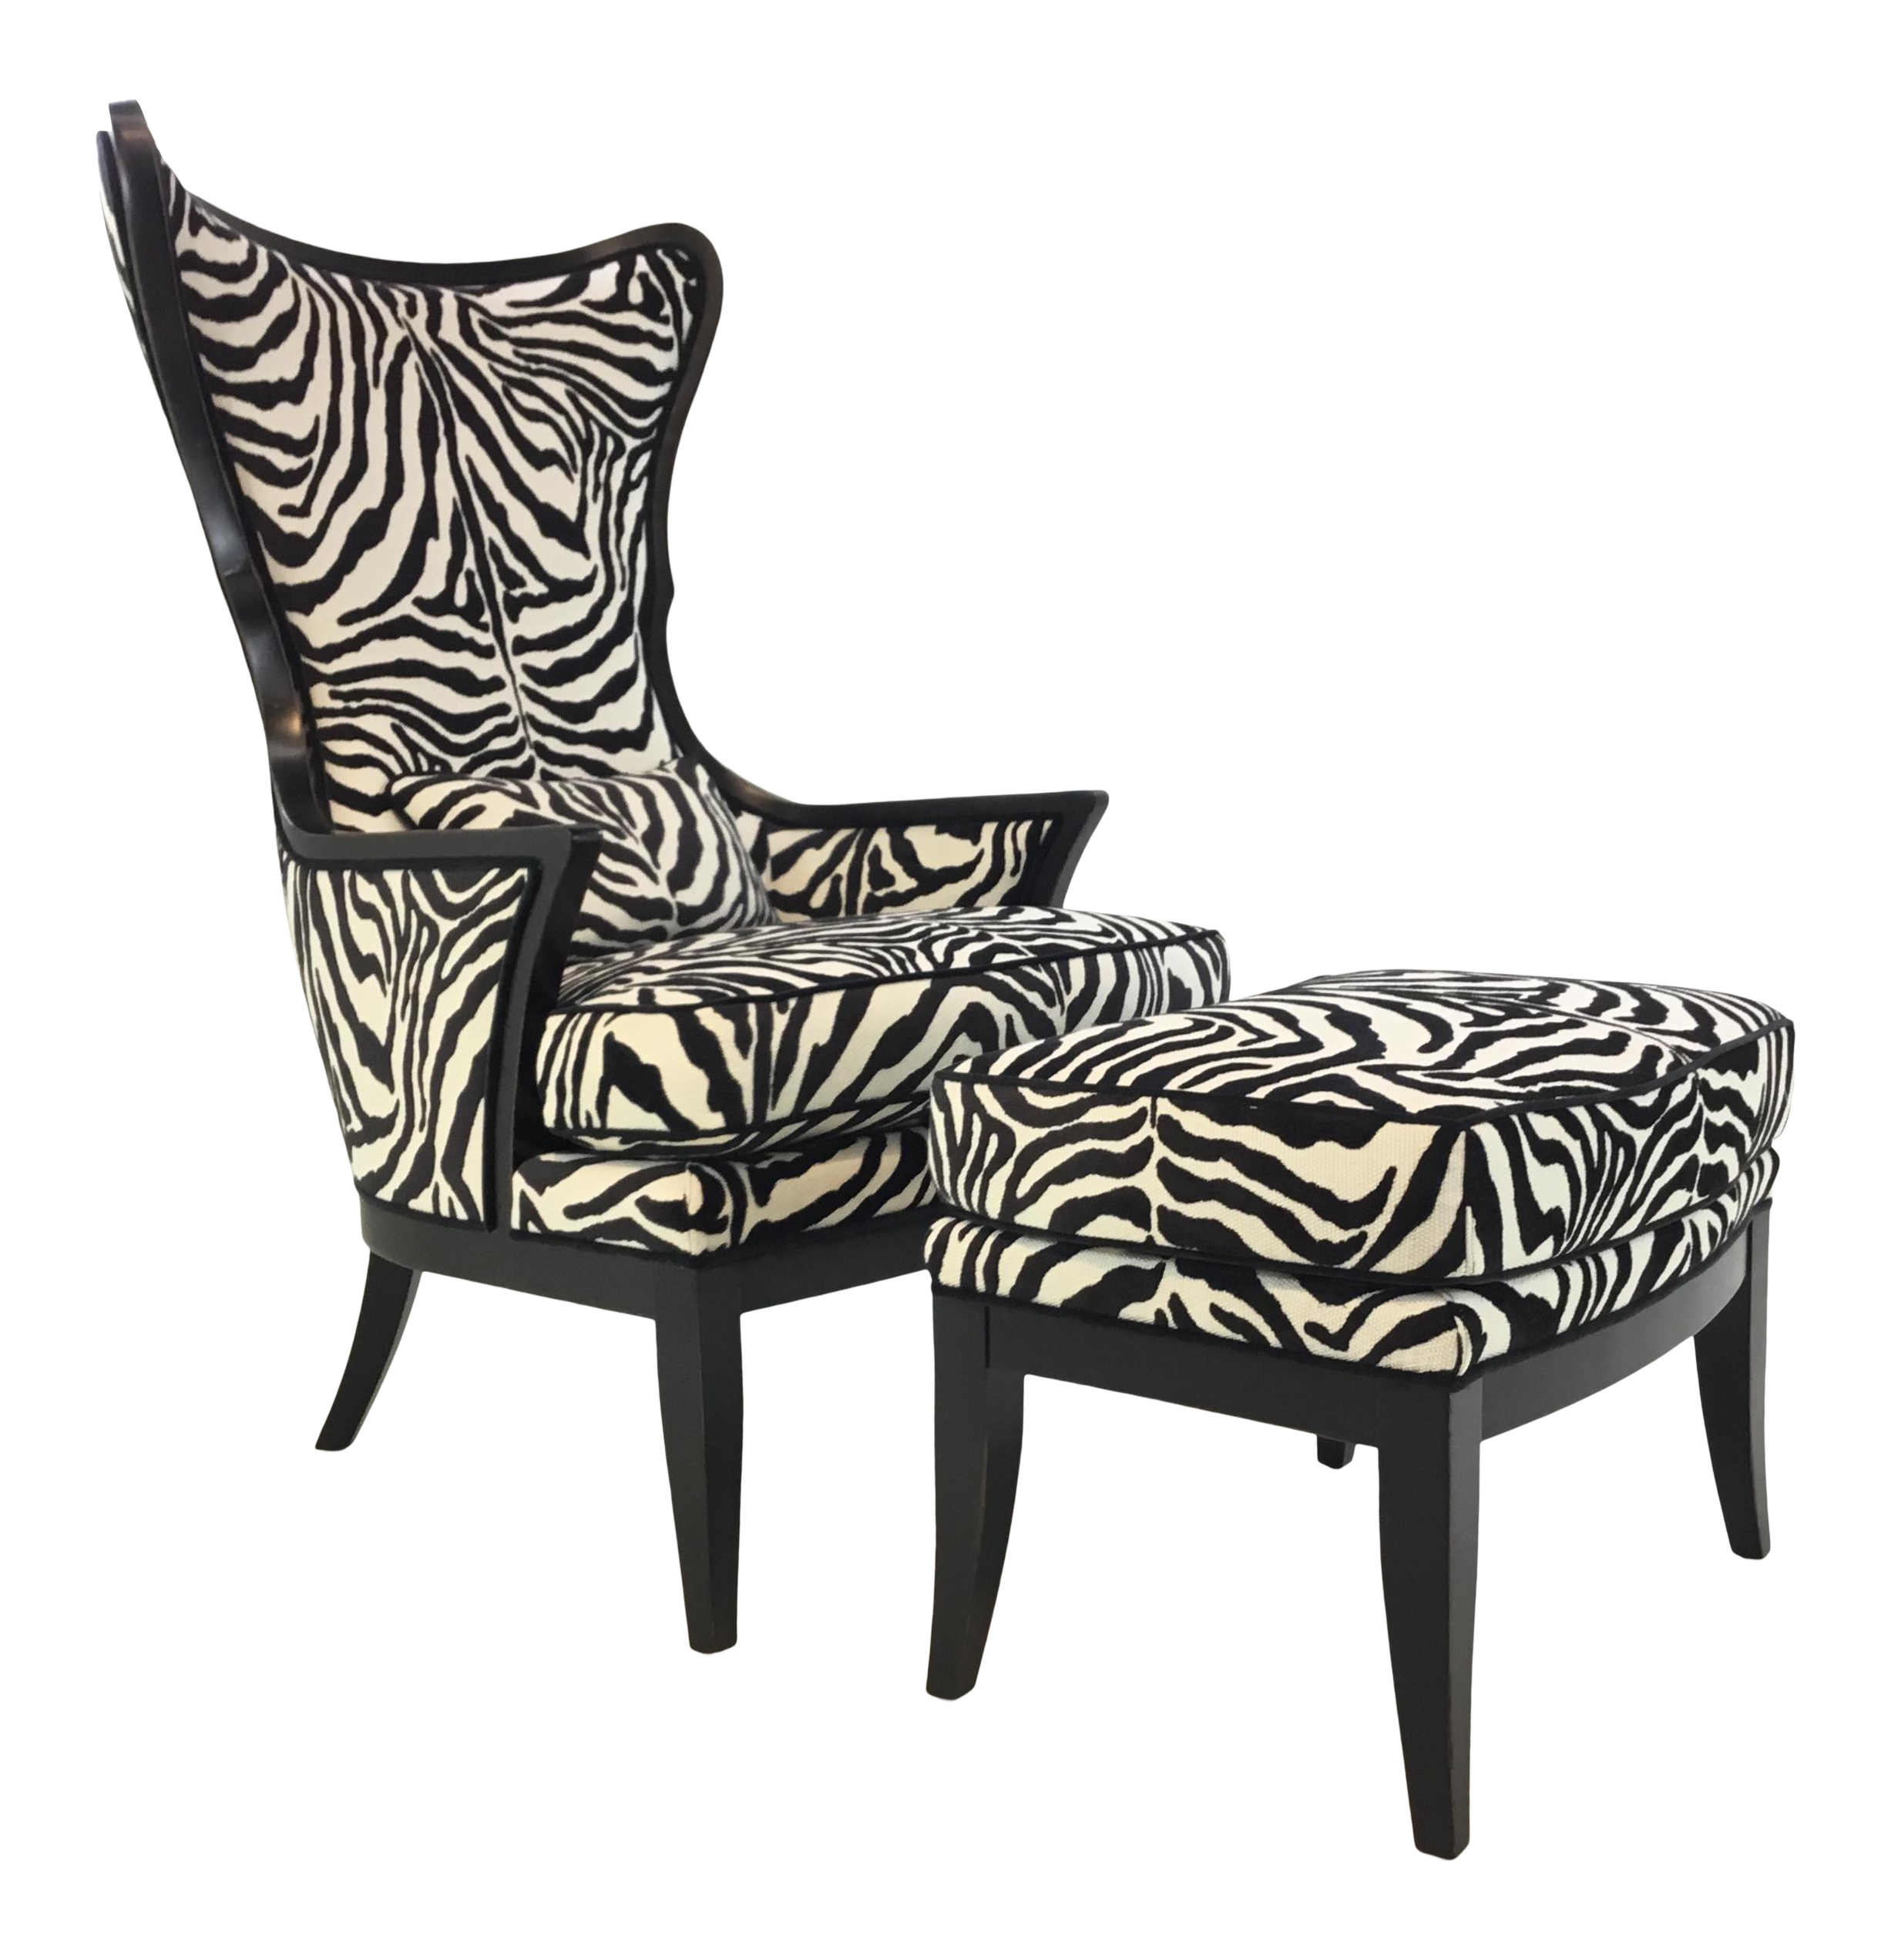 Safavieh En Vogue Dining Matty Black And White Striped: Pictures On Black And White Zebra Chairs